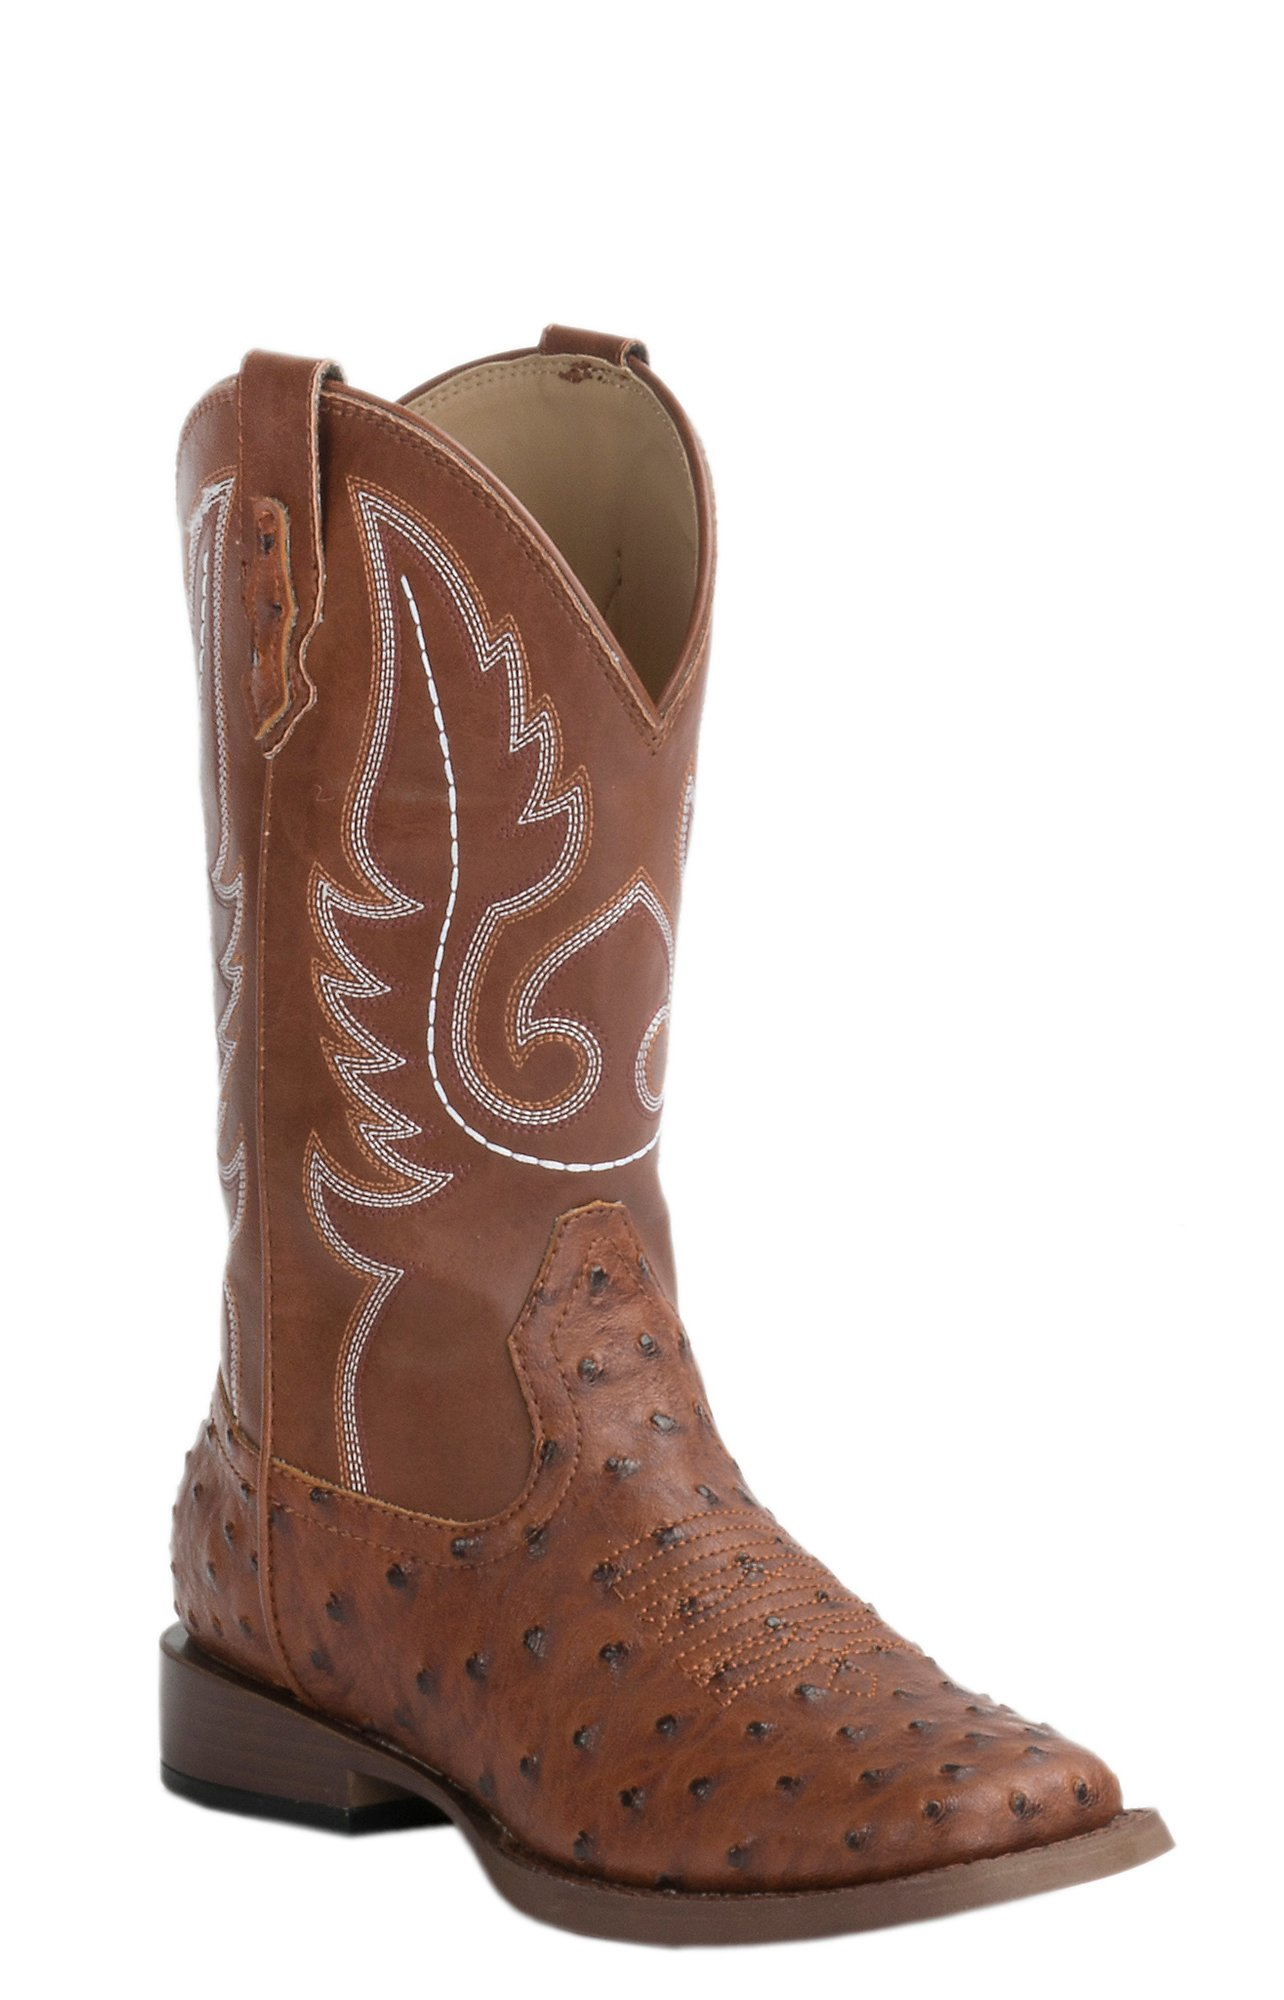 Cheap Cowboy Boots For Men | Affordable Cowboy Boots | Cavender's